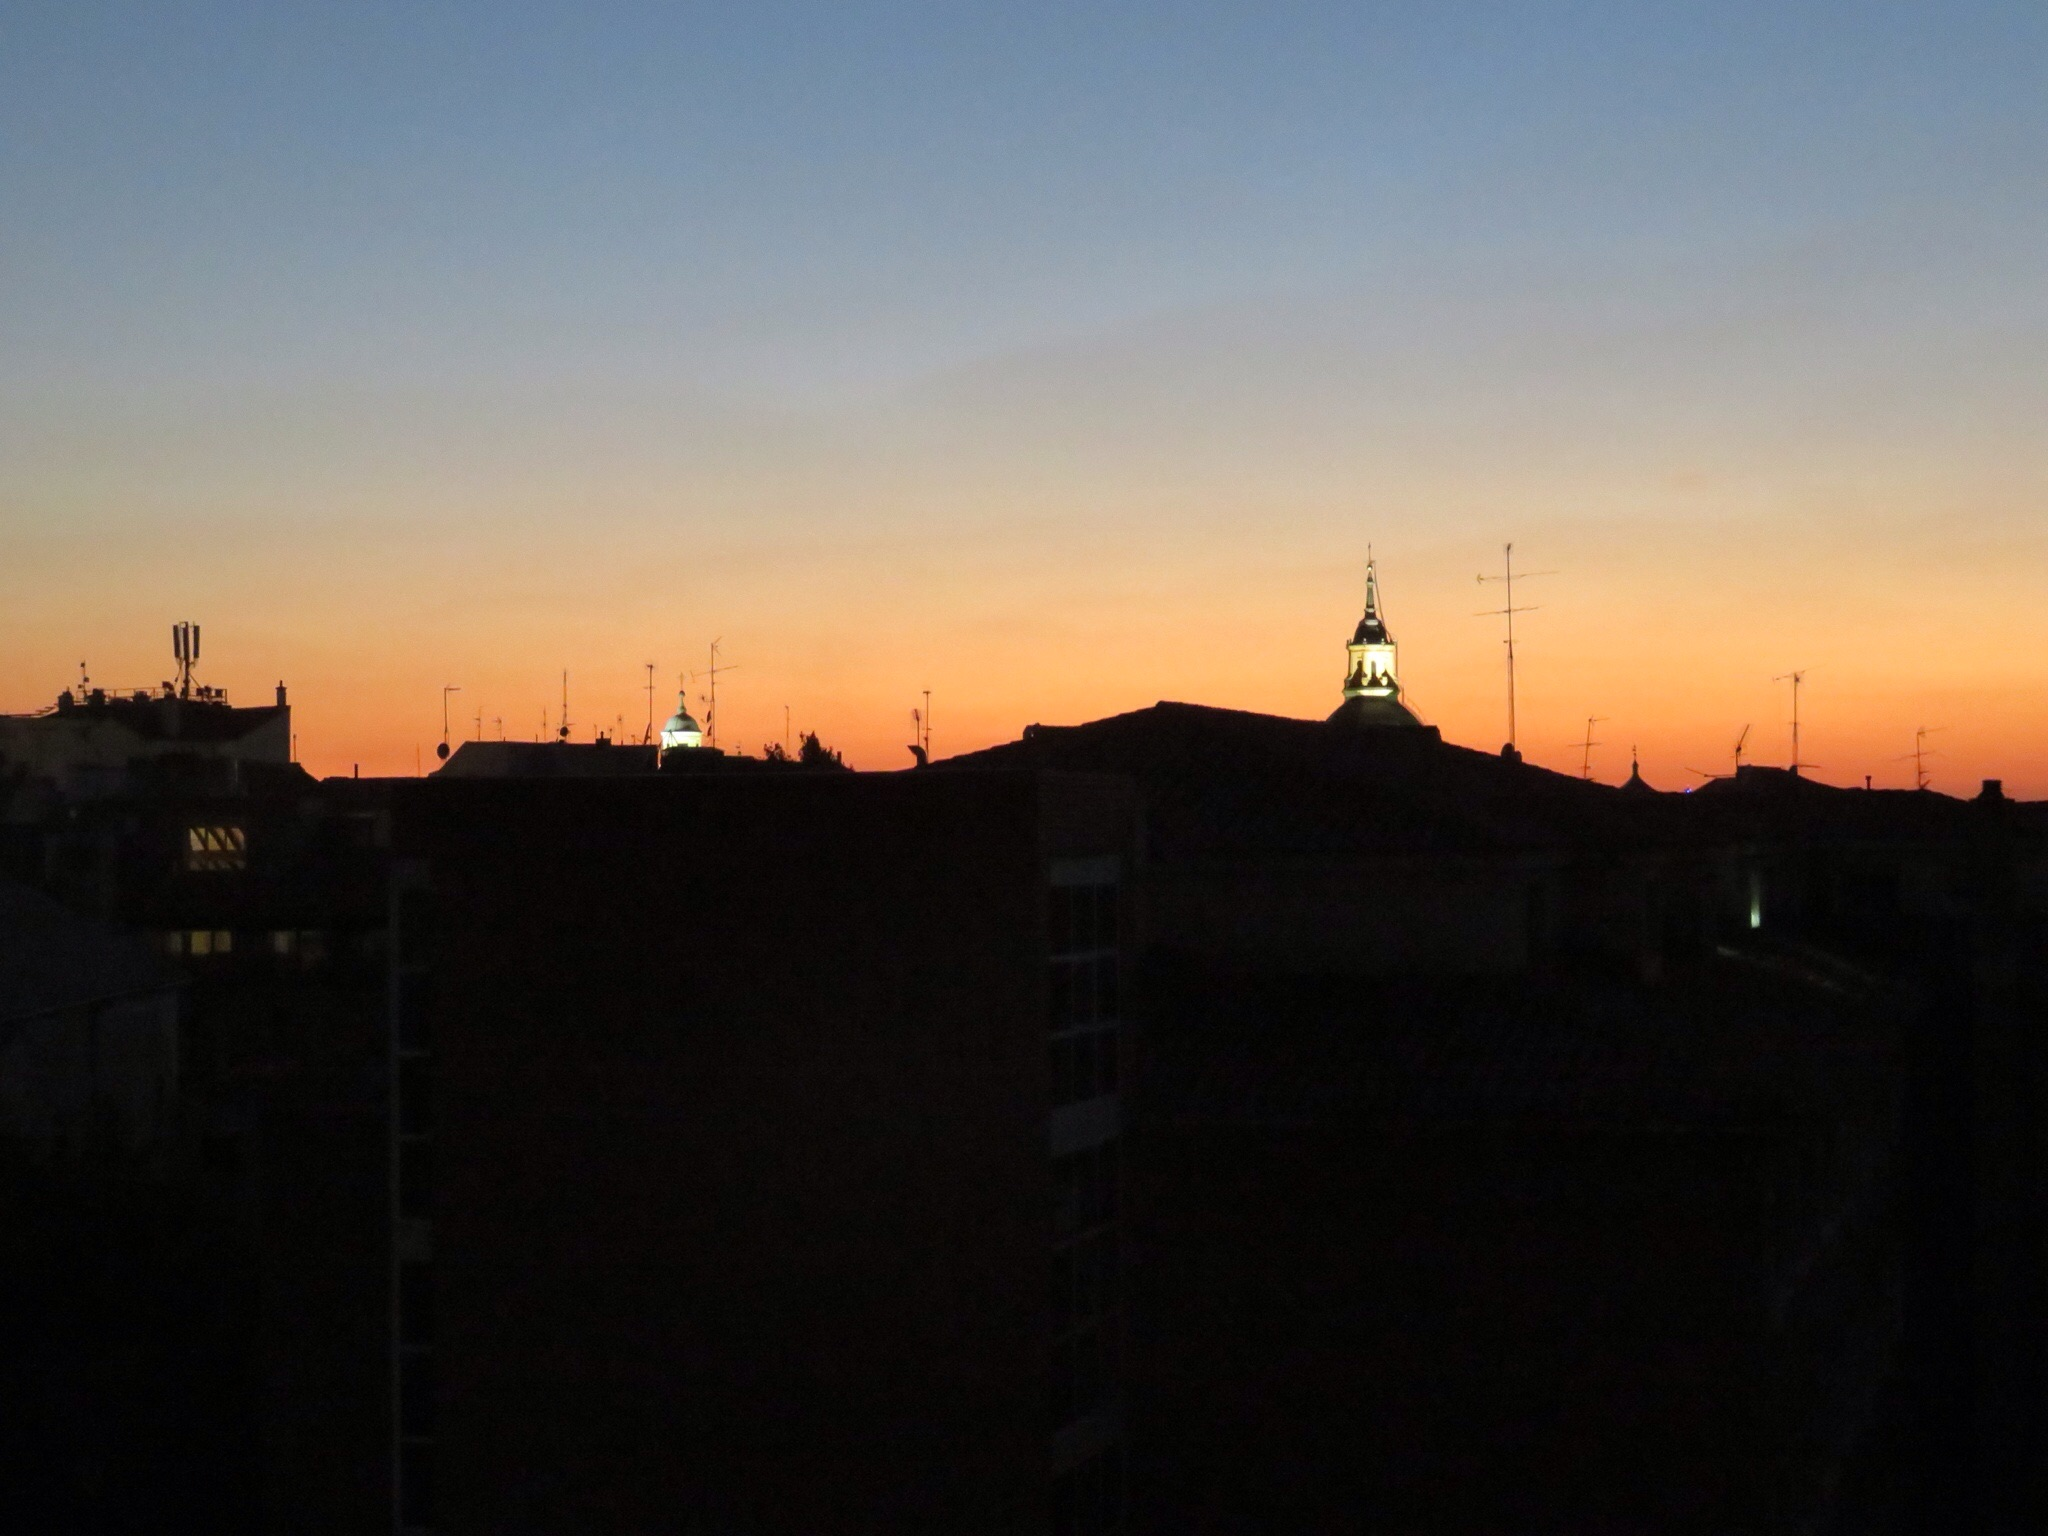 Sunset from the apartment balcony - Madrid skyline.